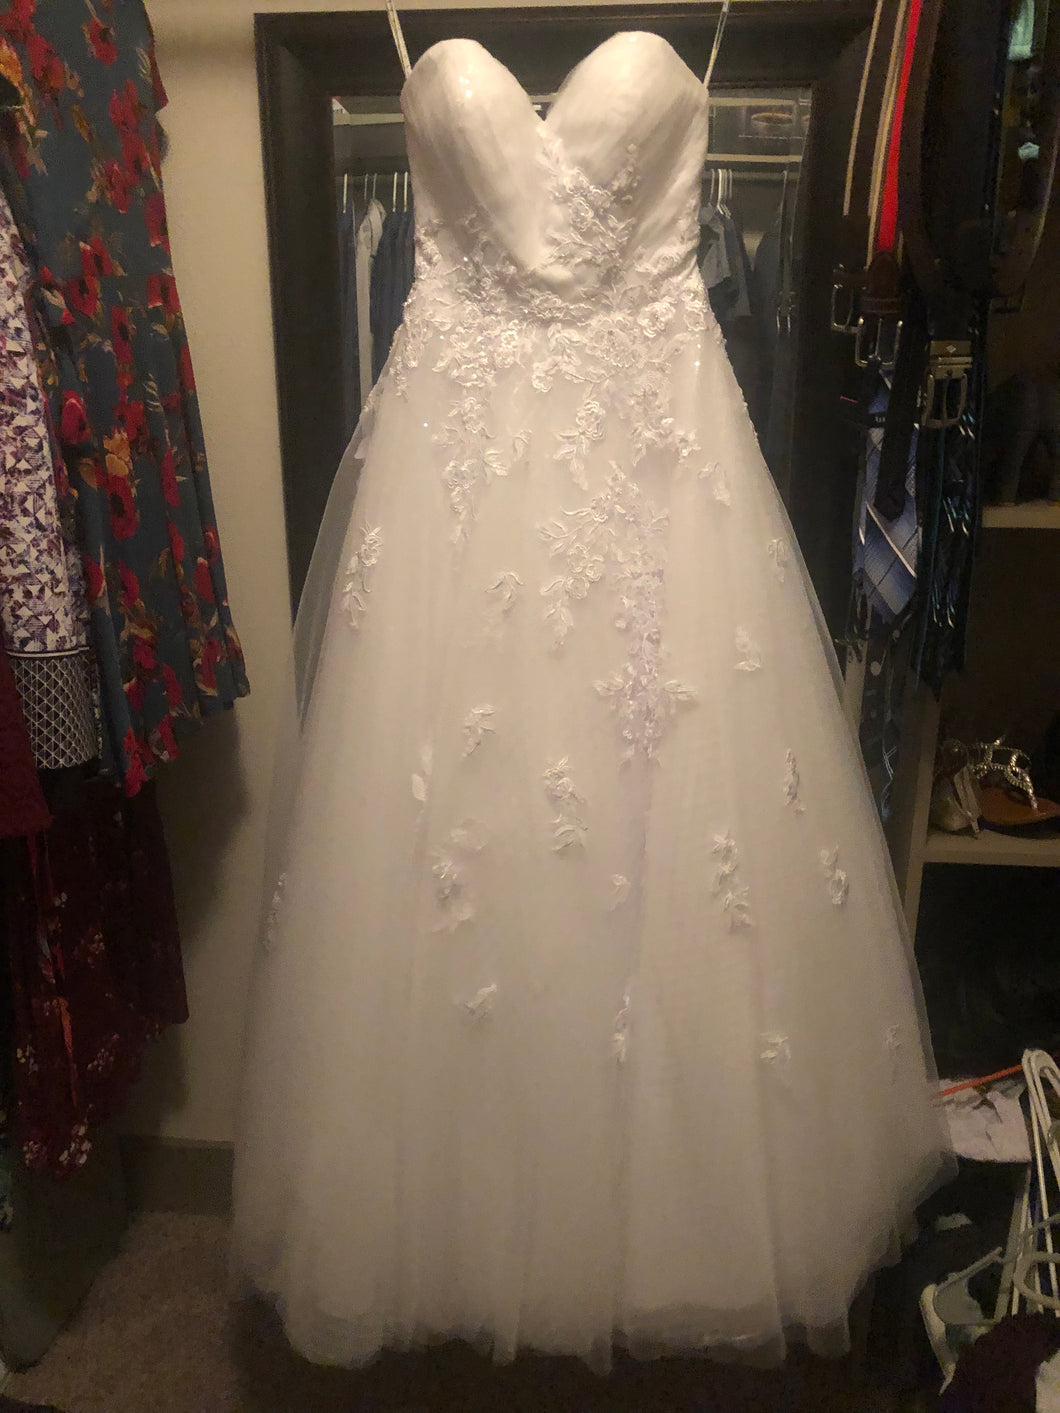 Mia Solano 'Phoenix' size 4 used wedding dress front view on hanger